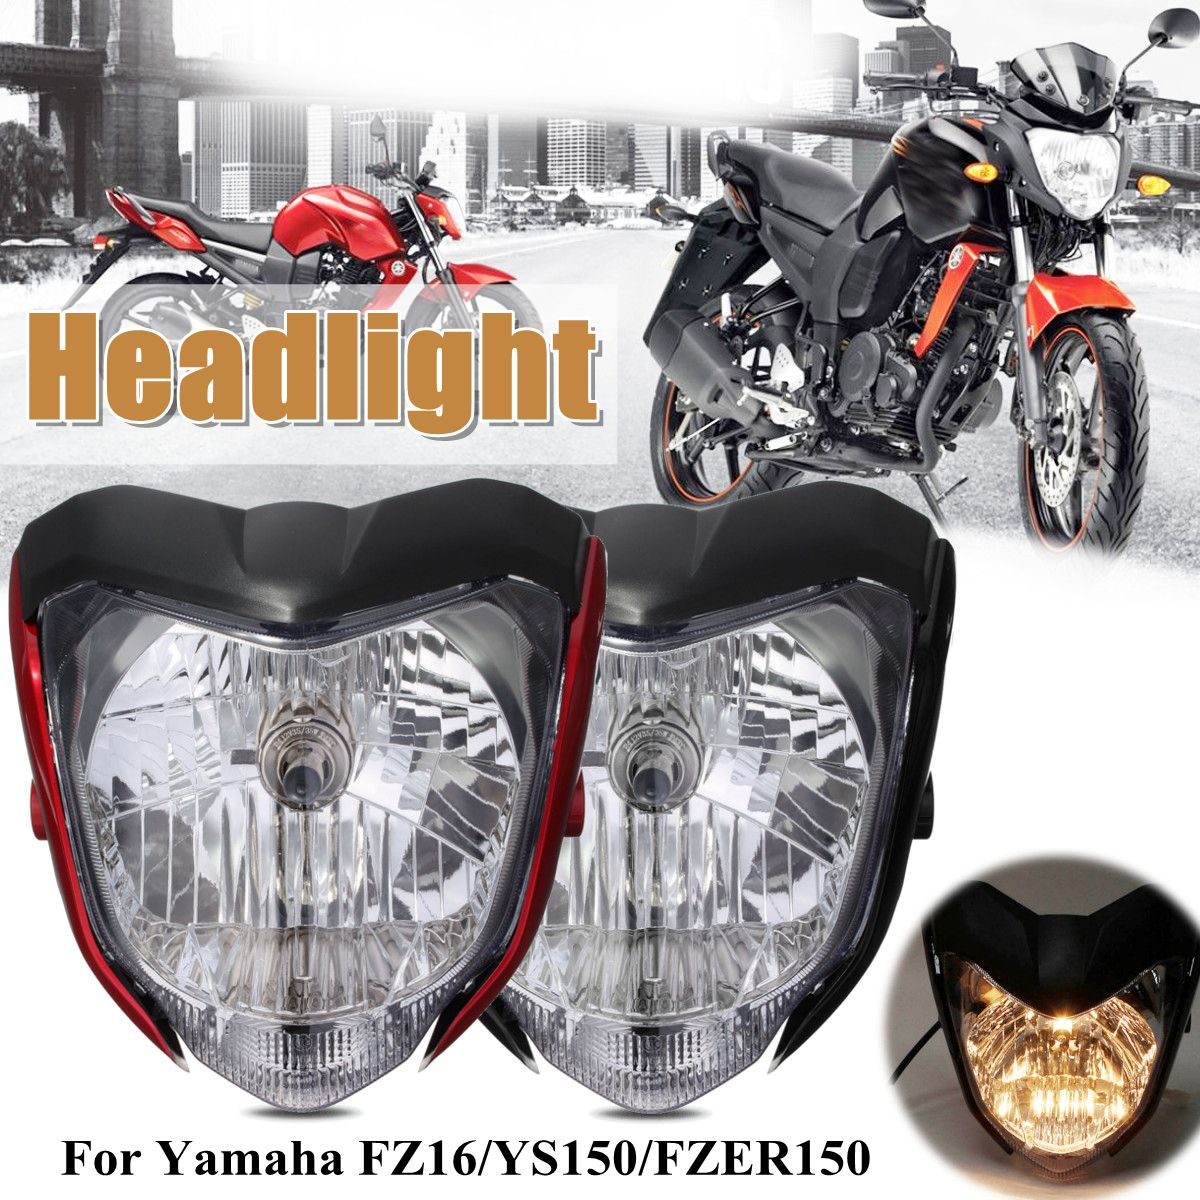 1Pcs Motorcycle Headlight With Bulb Bracket Fit For Yamaha FZ16 /YS150 / FZER150  ABS Plastic Headlight Assembly